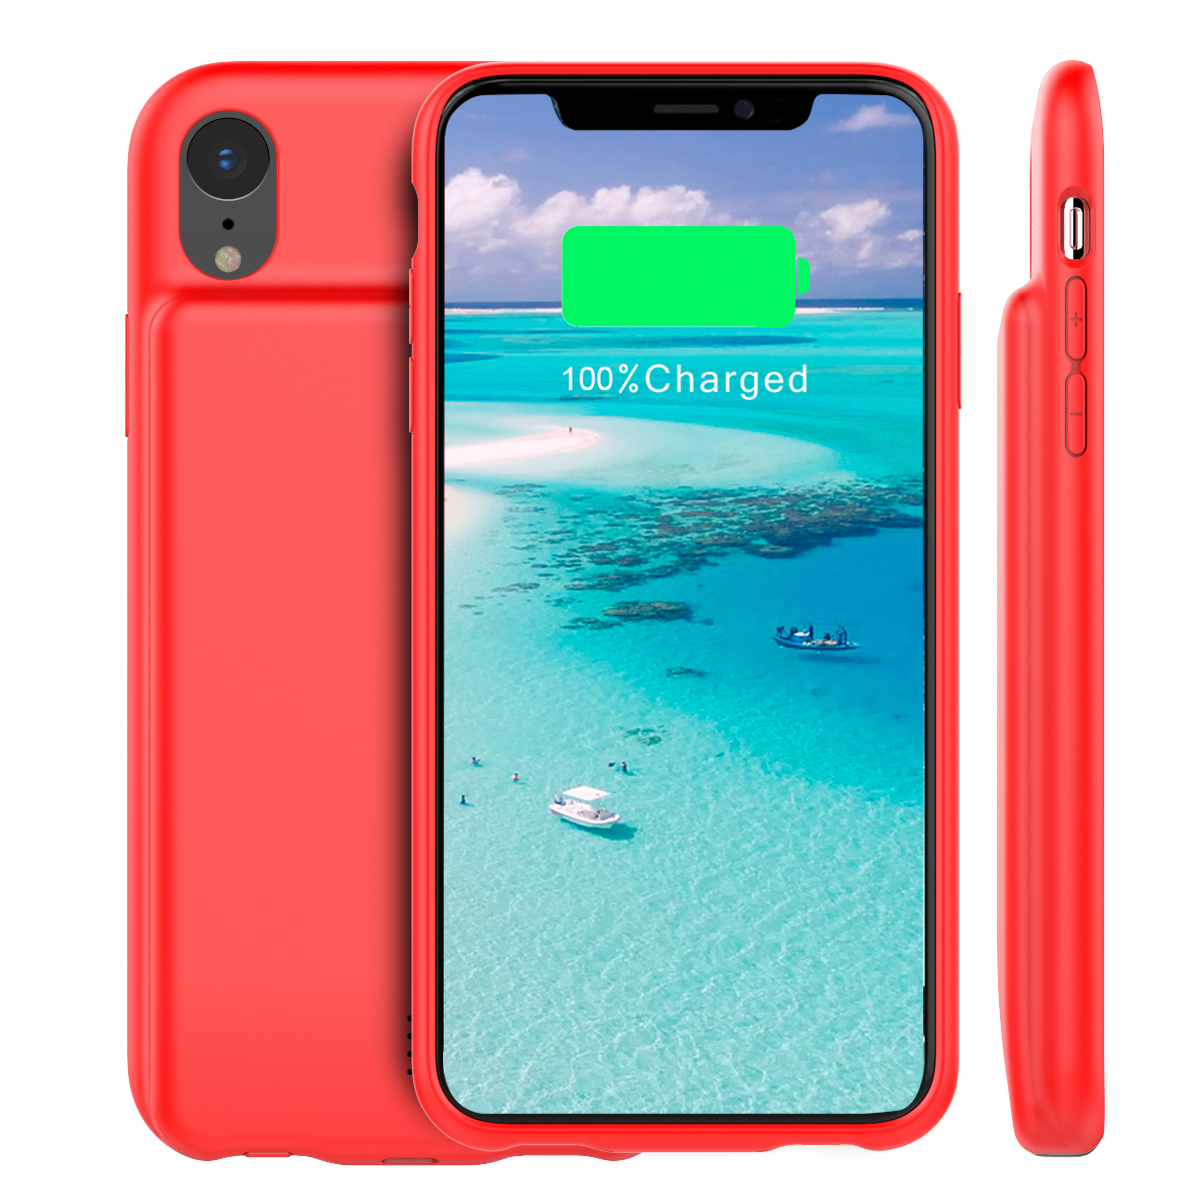 For iPhone Xr Battery Charger Case with Audio 5000mAh External Backup Charger Power Bank Protective Phone Shell phone CoverFor iPhone Xr Battery Charger Case with Audio 5000mAh External Backup Charger Power Bank Protective Phone Shell phone Cover